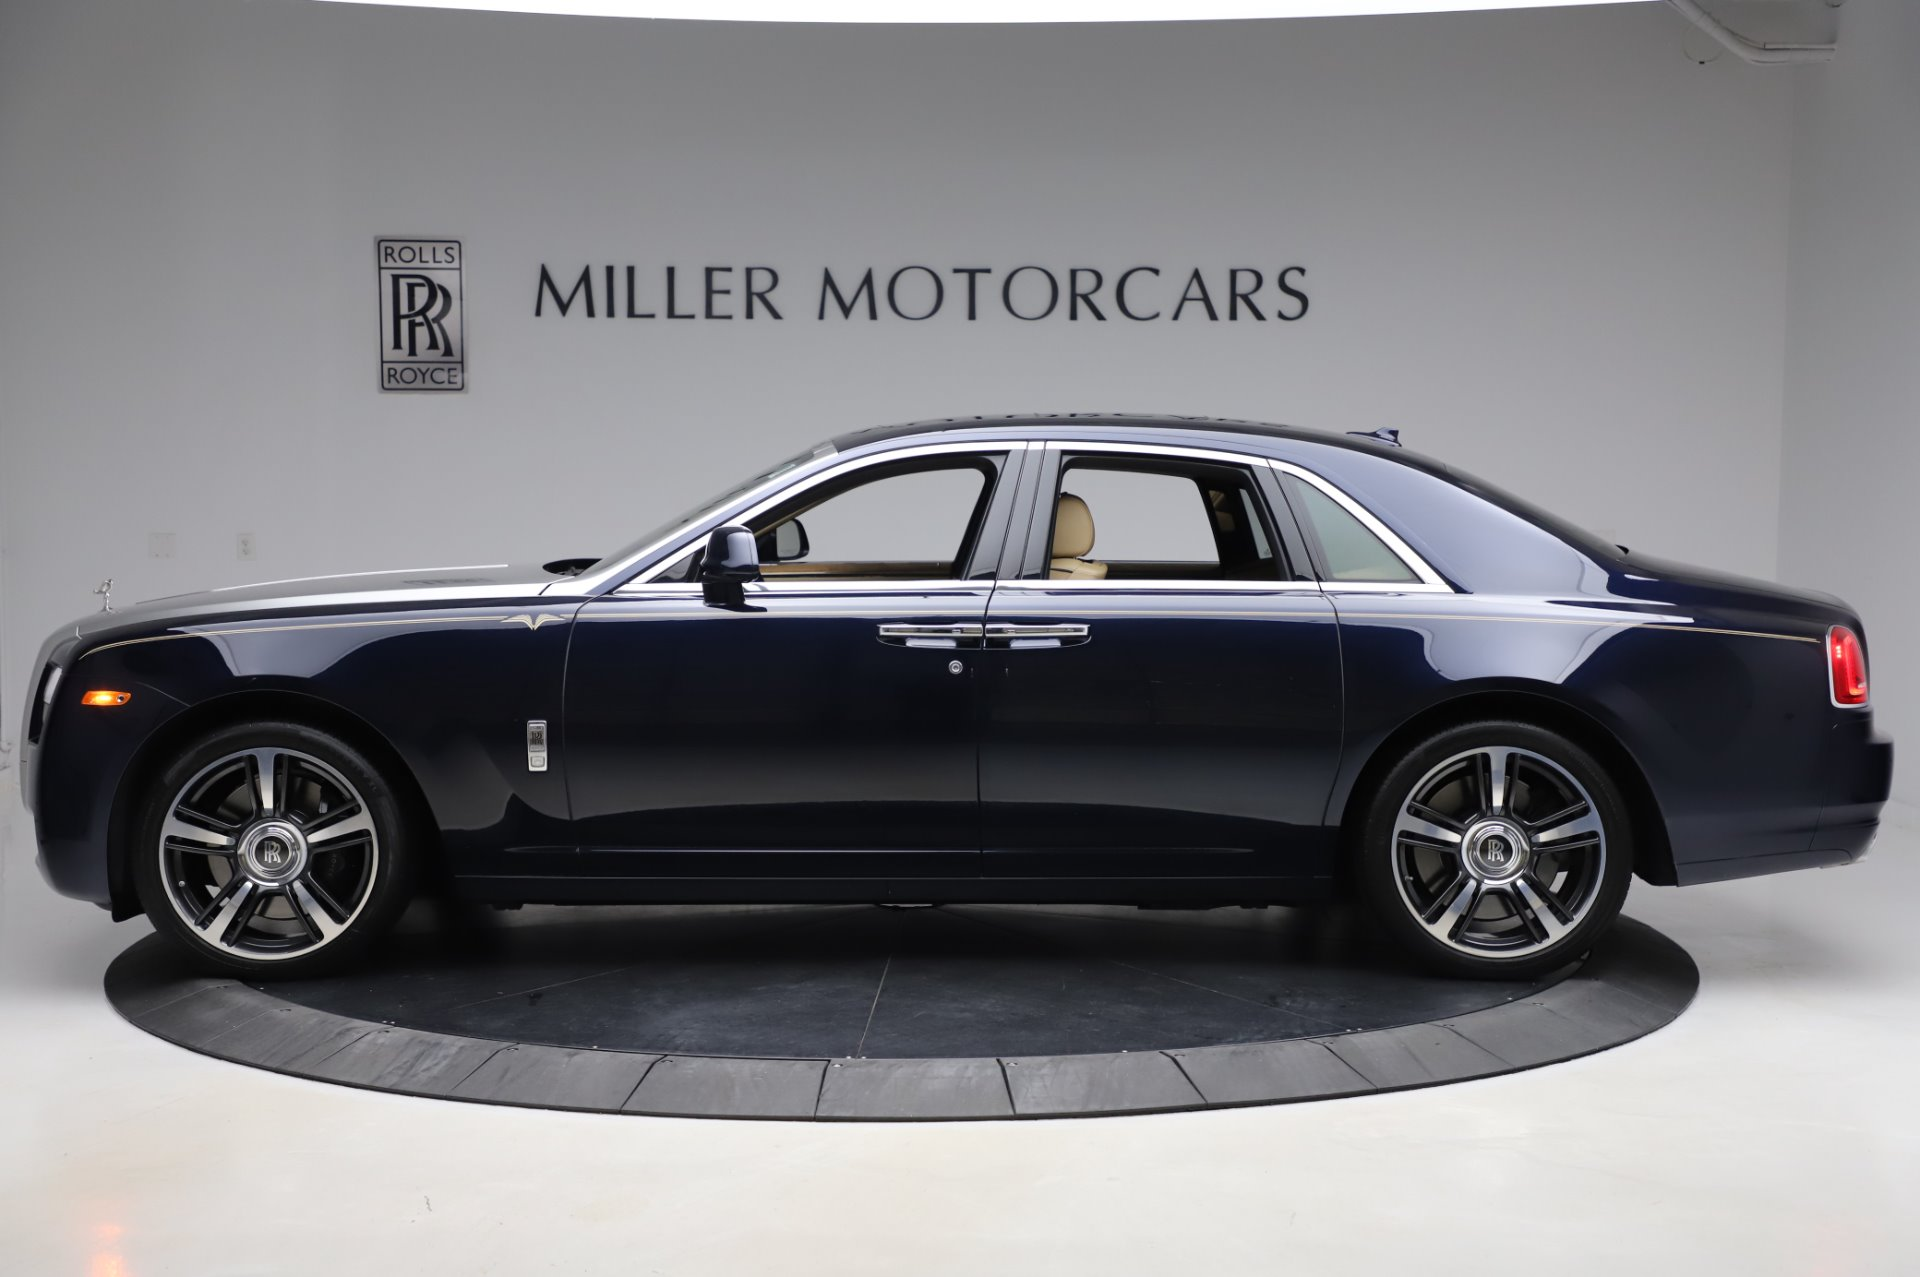 Used 2014 Rolls-Royce Ghost V-Spec For Sale In Westport, CT 858_p3